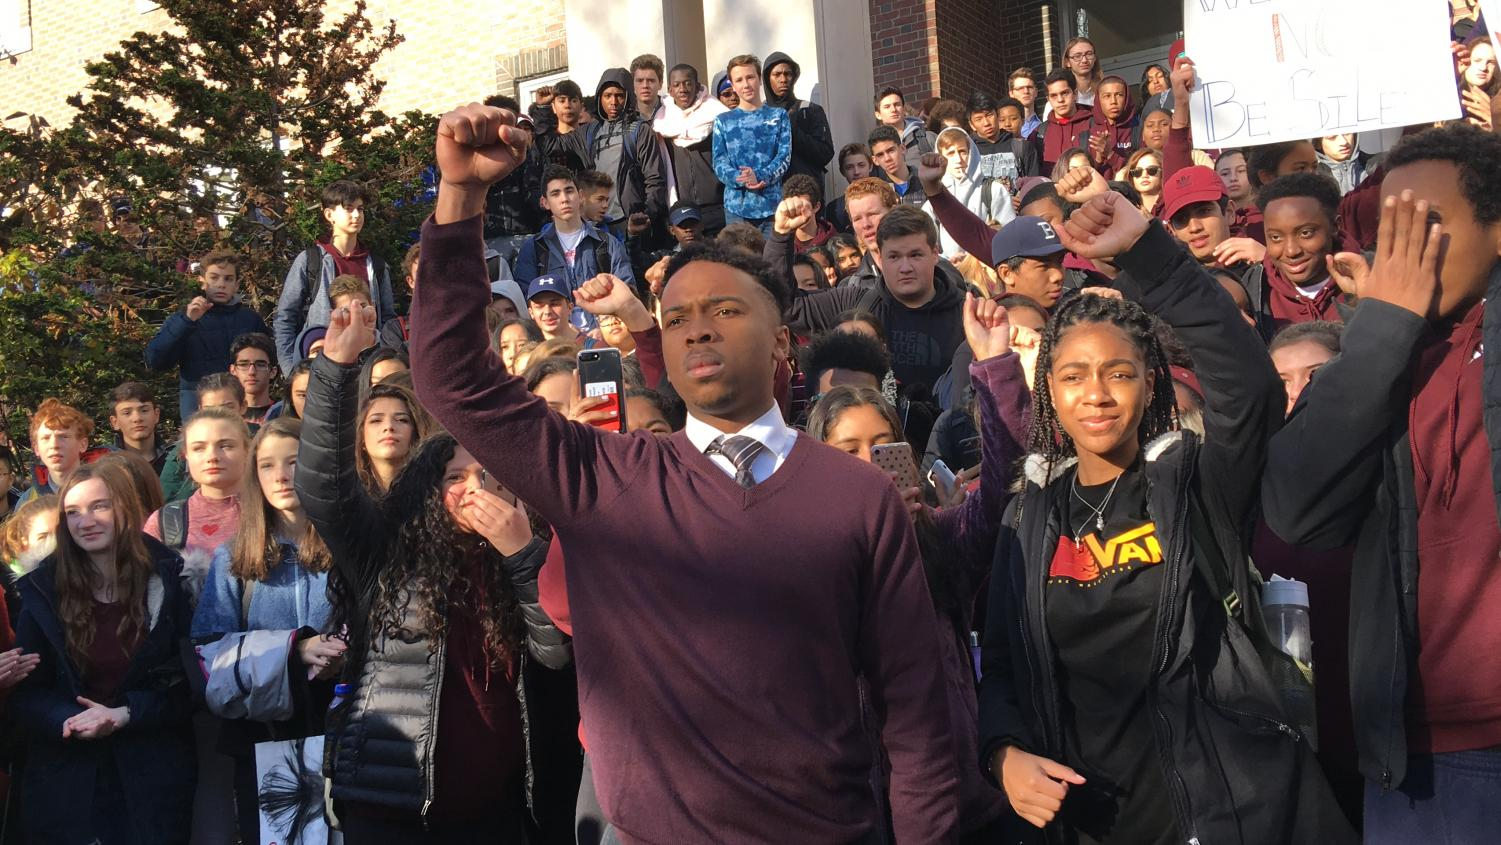 Senior Anthony Vieti leads Thursday's protest against racism by raising his arm in solidarity with the hundreds of community members shocked by the epithet-filled videos. There were two protests, one at 9 a.m. and one at 2 p.m.